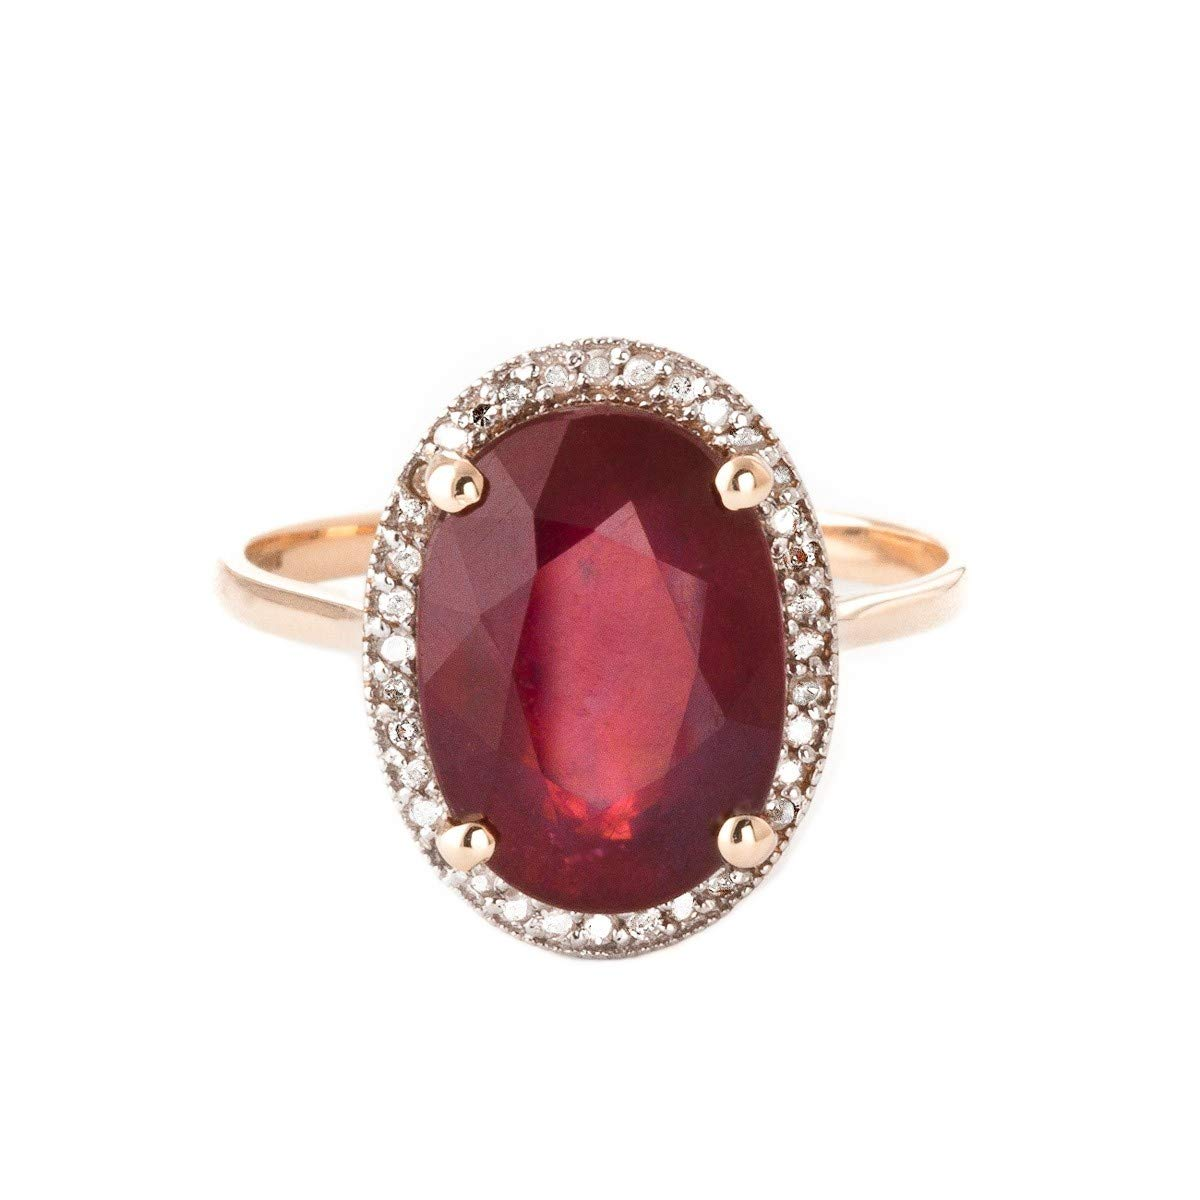 Galaxy Gold7.93 Carat 14k Solid Rose Gold Ring with Natural Oval-Shaped Ruby and Genuine Diamonds - Size 5.5